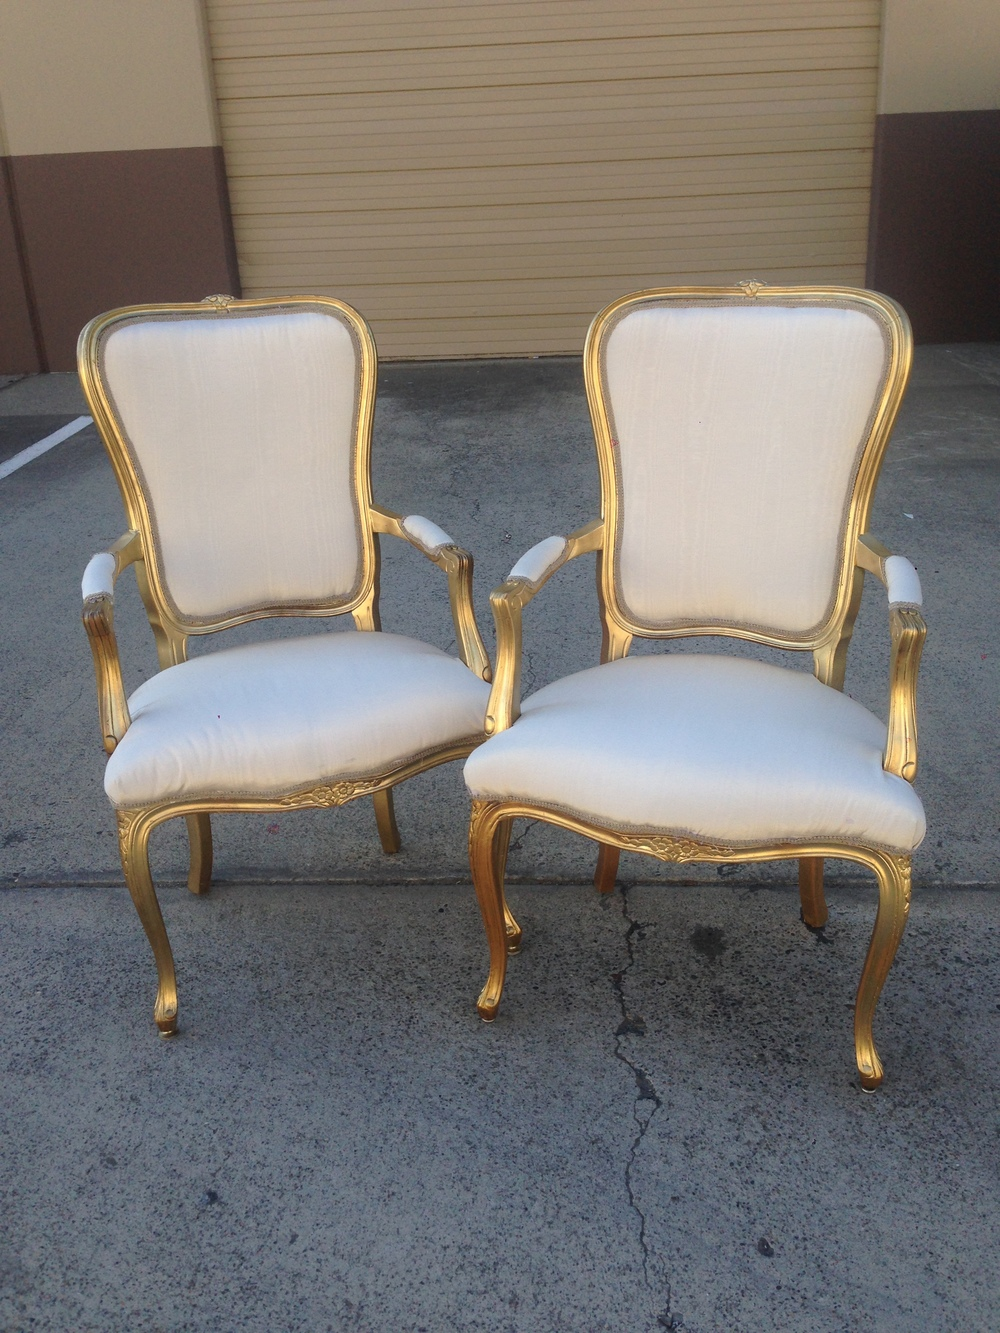 LouisChairs.JPG